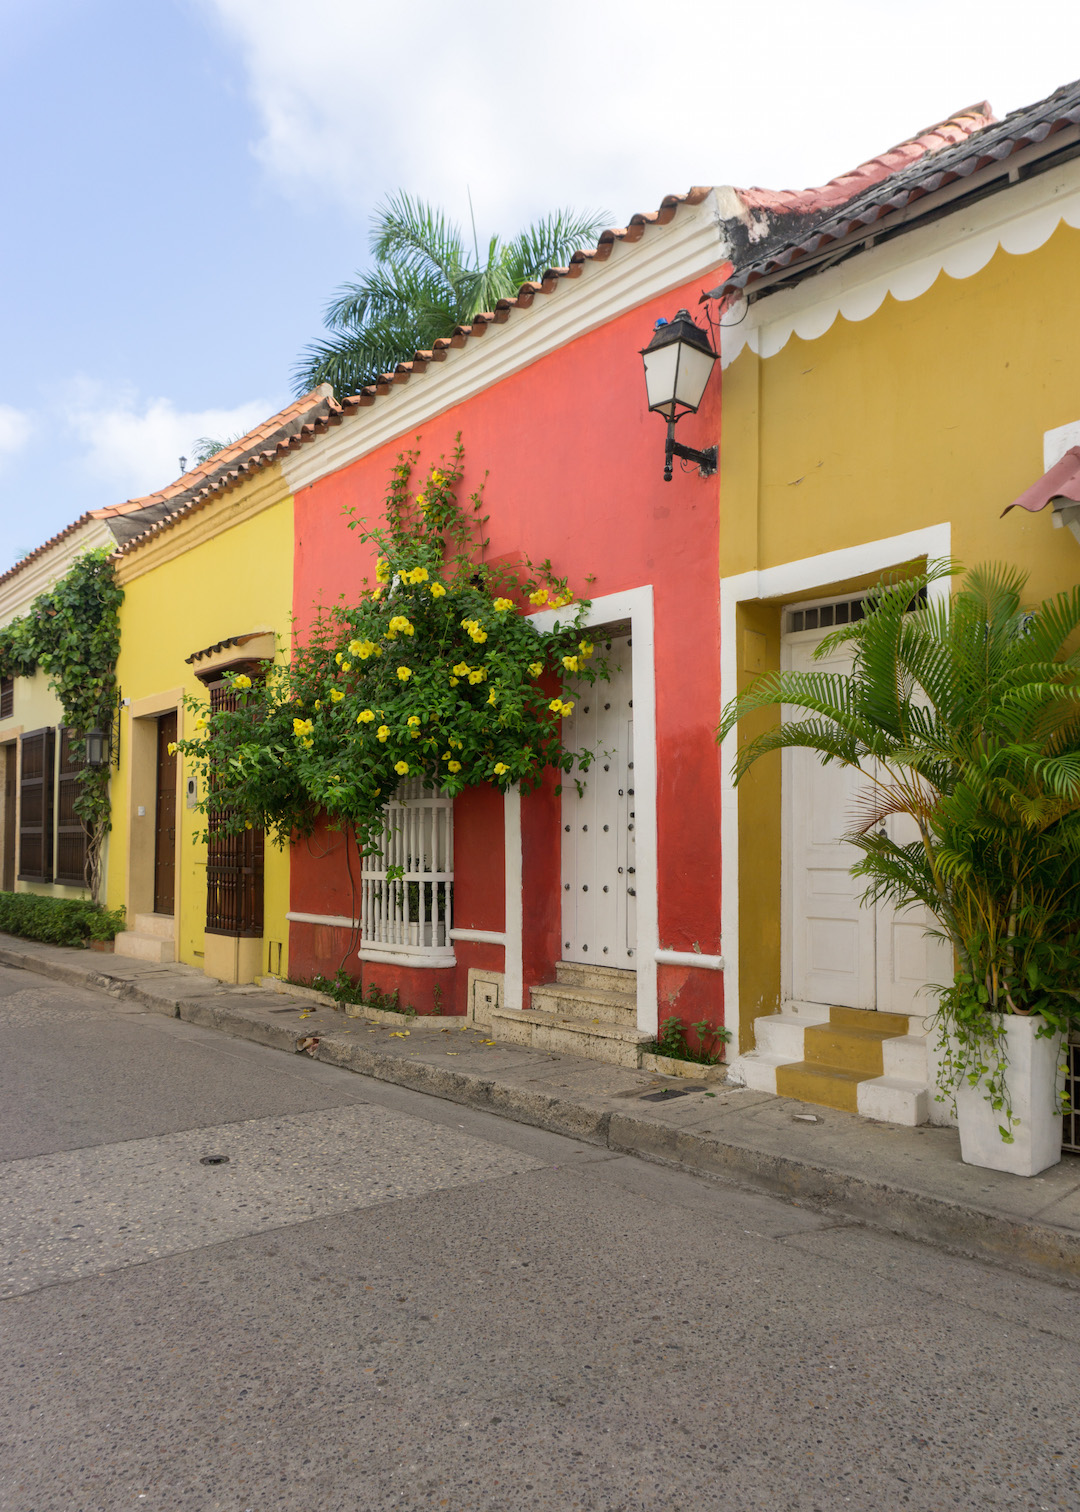 Colorful Houses in Getsemani Cartagena